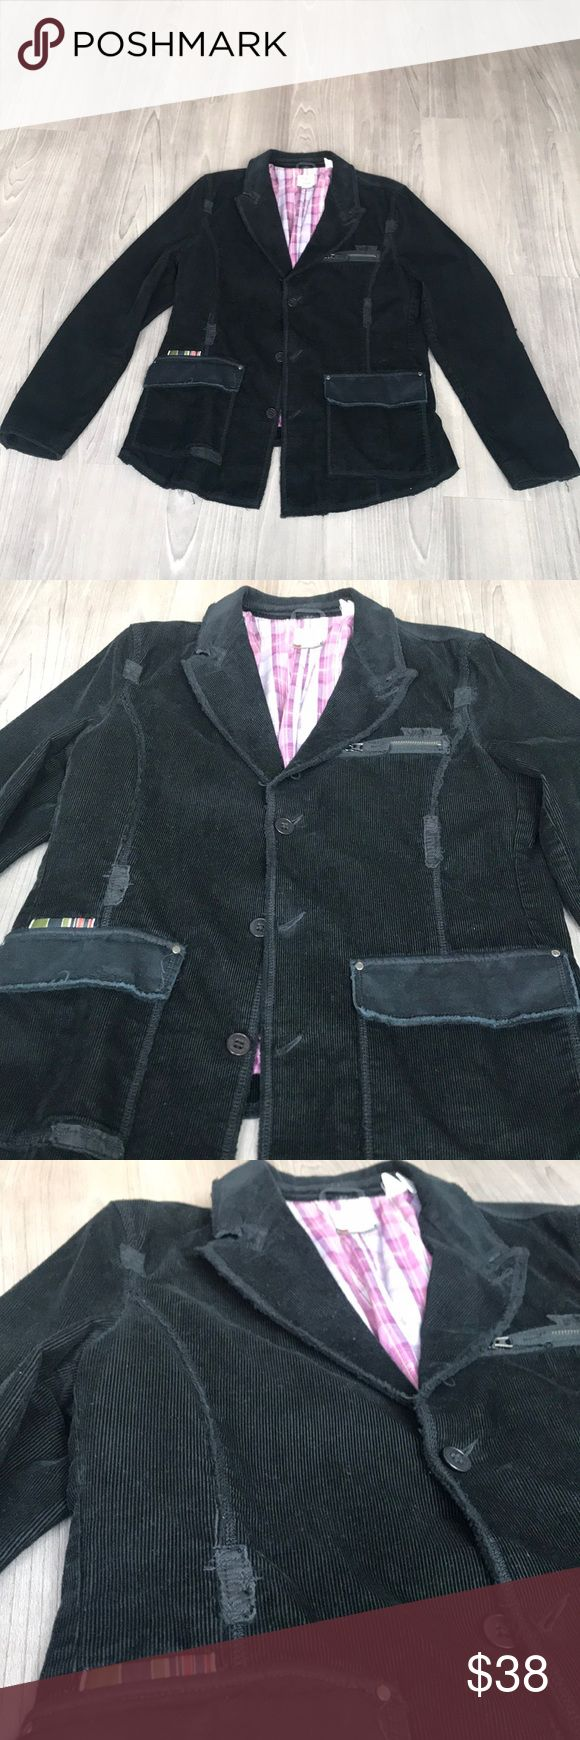 TRIPLE FIVE SOUL | BLAZER Outer shell in great condition  Only Flaw: Inside left pocket is torn. Simple fix at your local dry-cleaner or seamstress/tailor. Triple Five Soul Suits & Blazers Sport Coats & Blazers